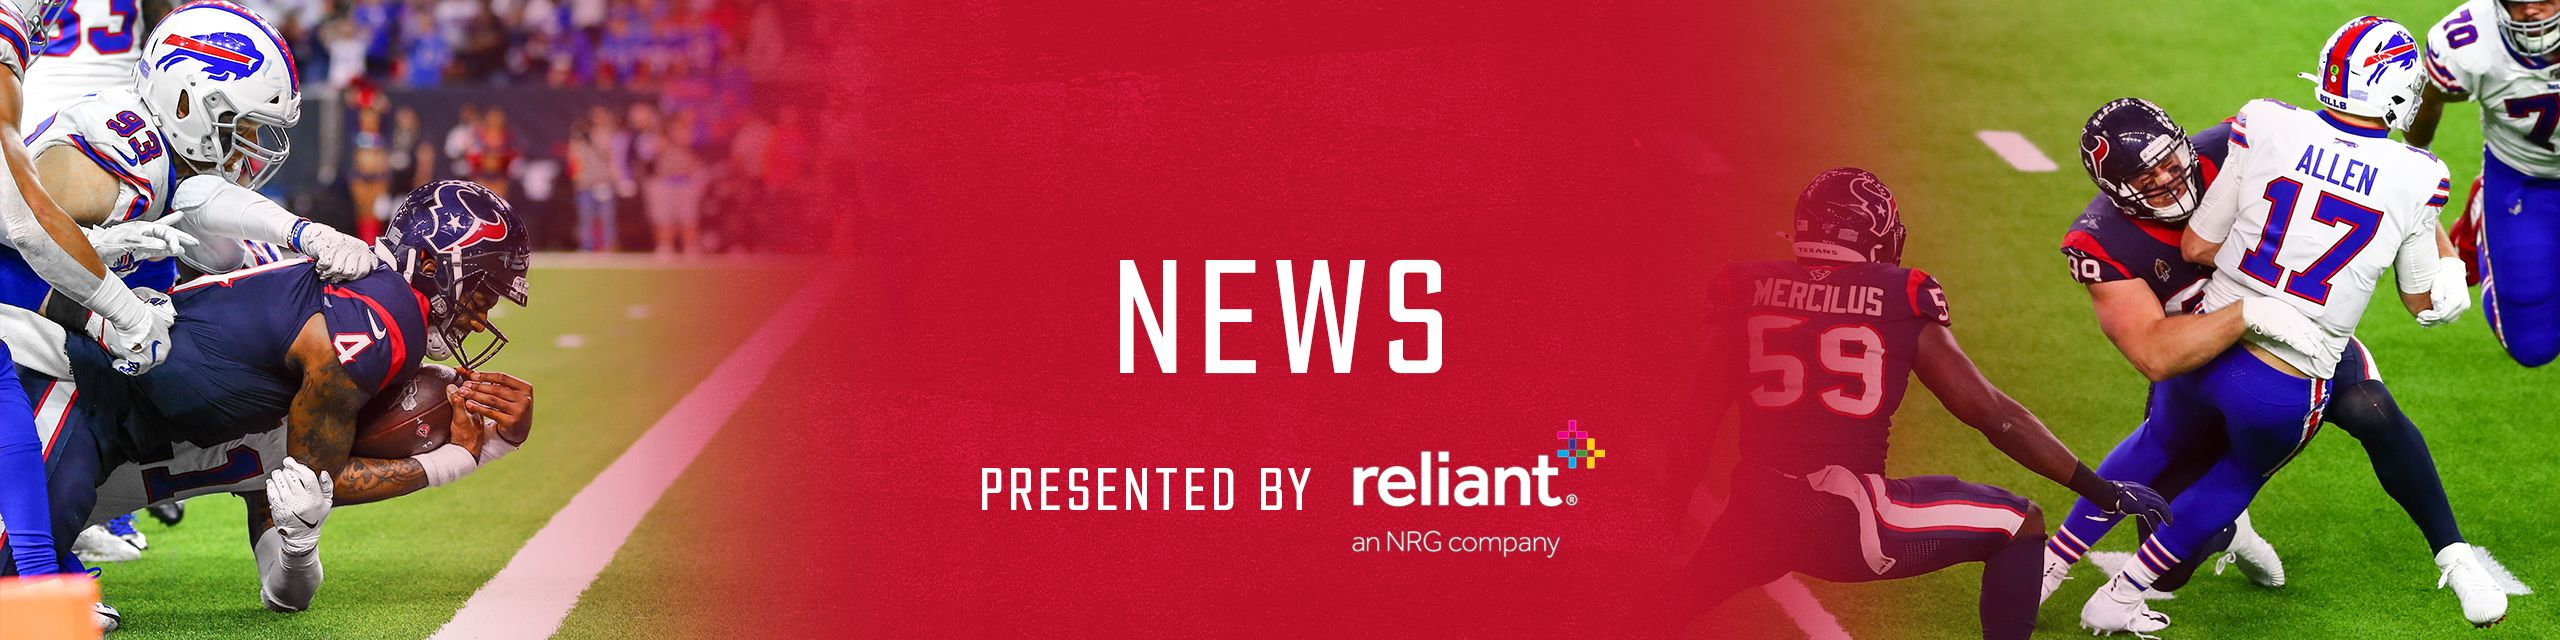 News. presented by Reliant